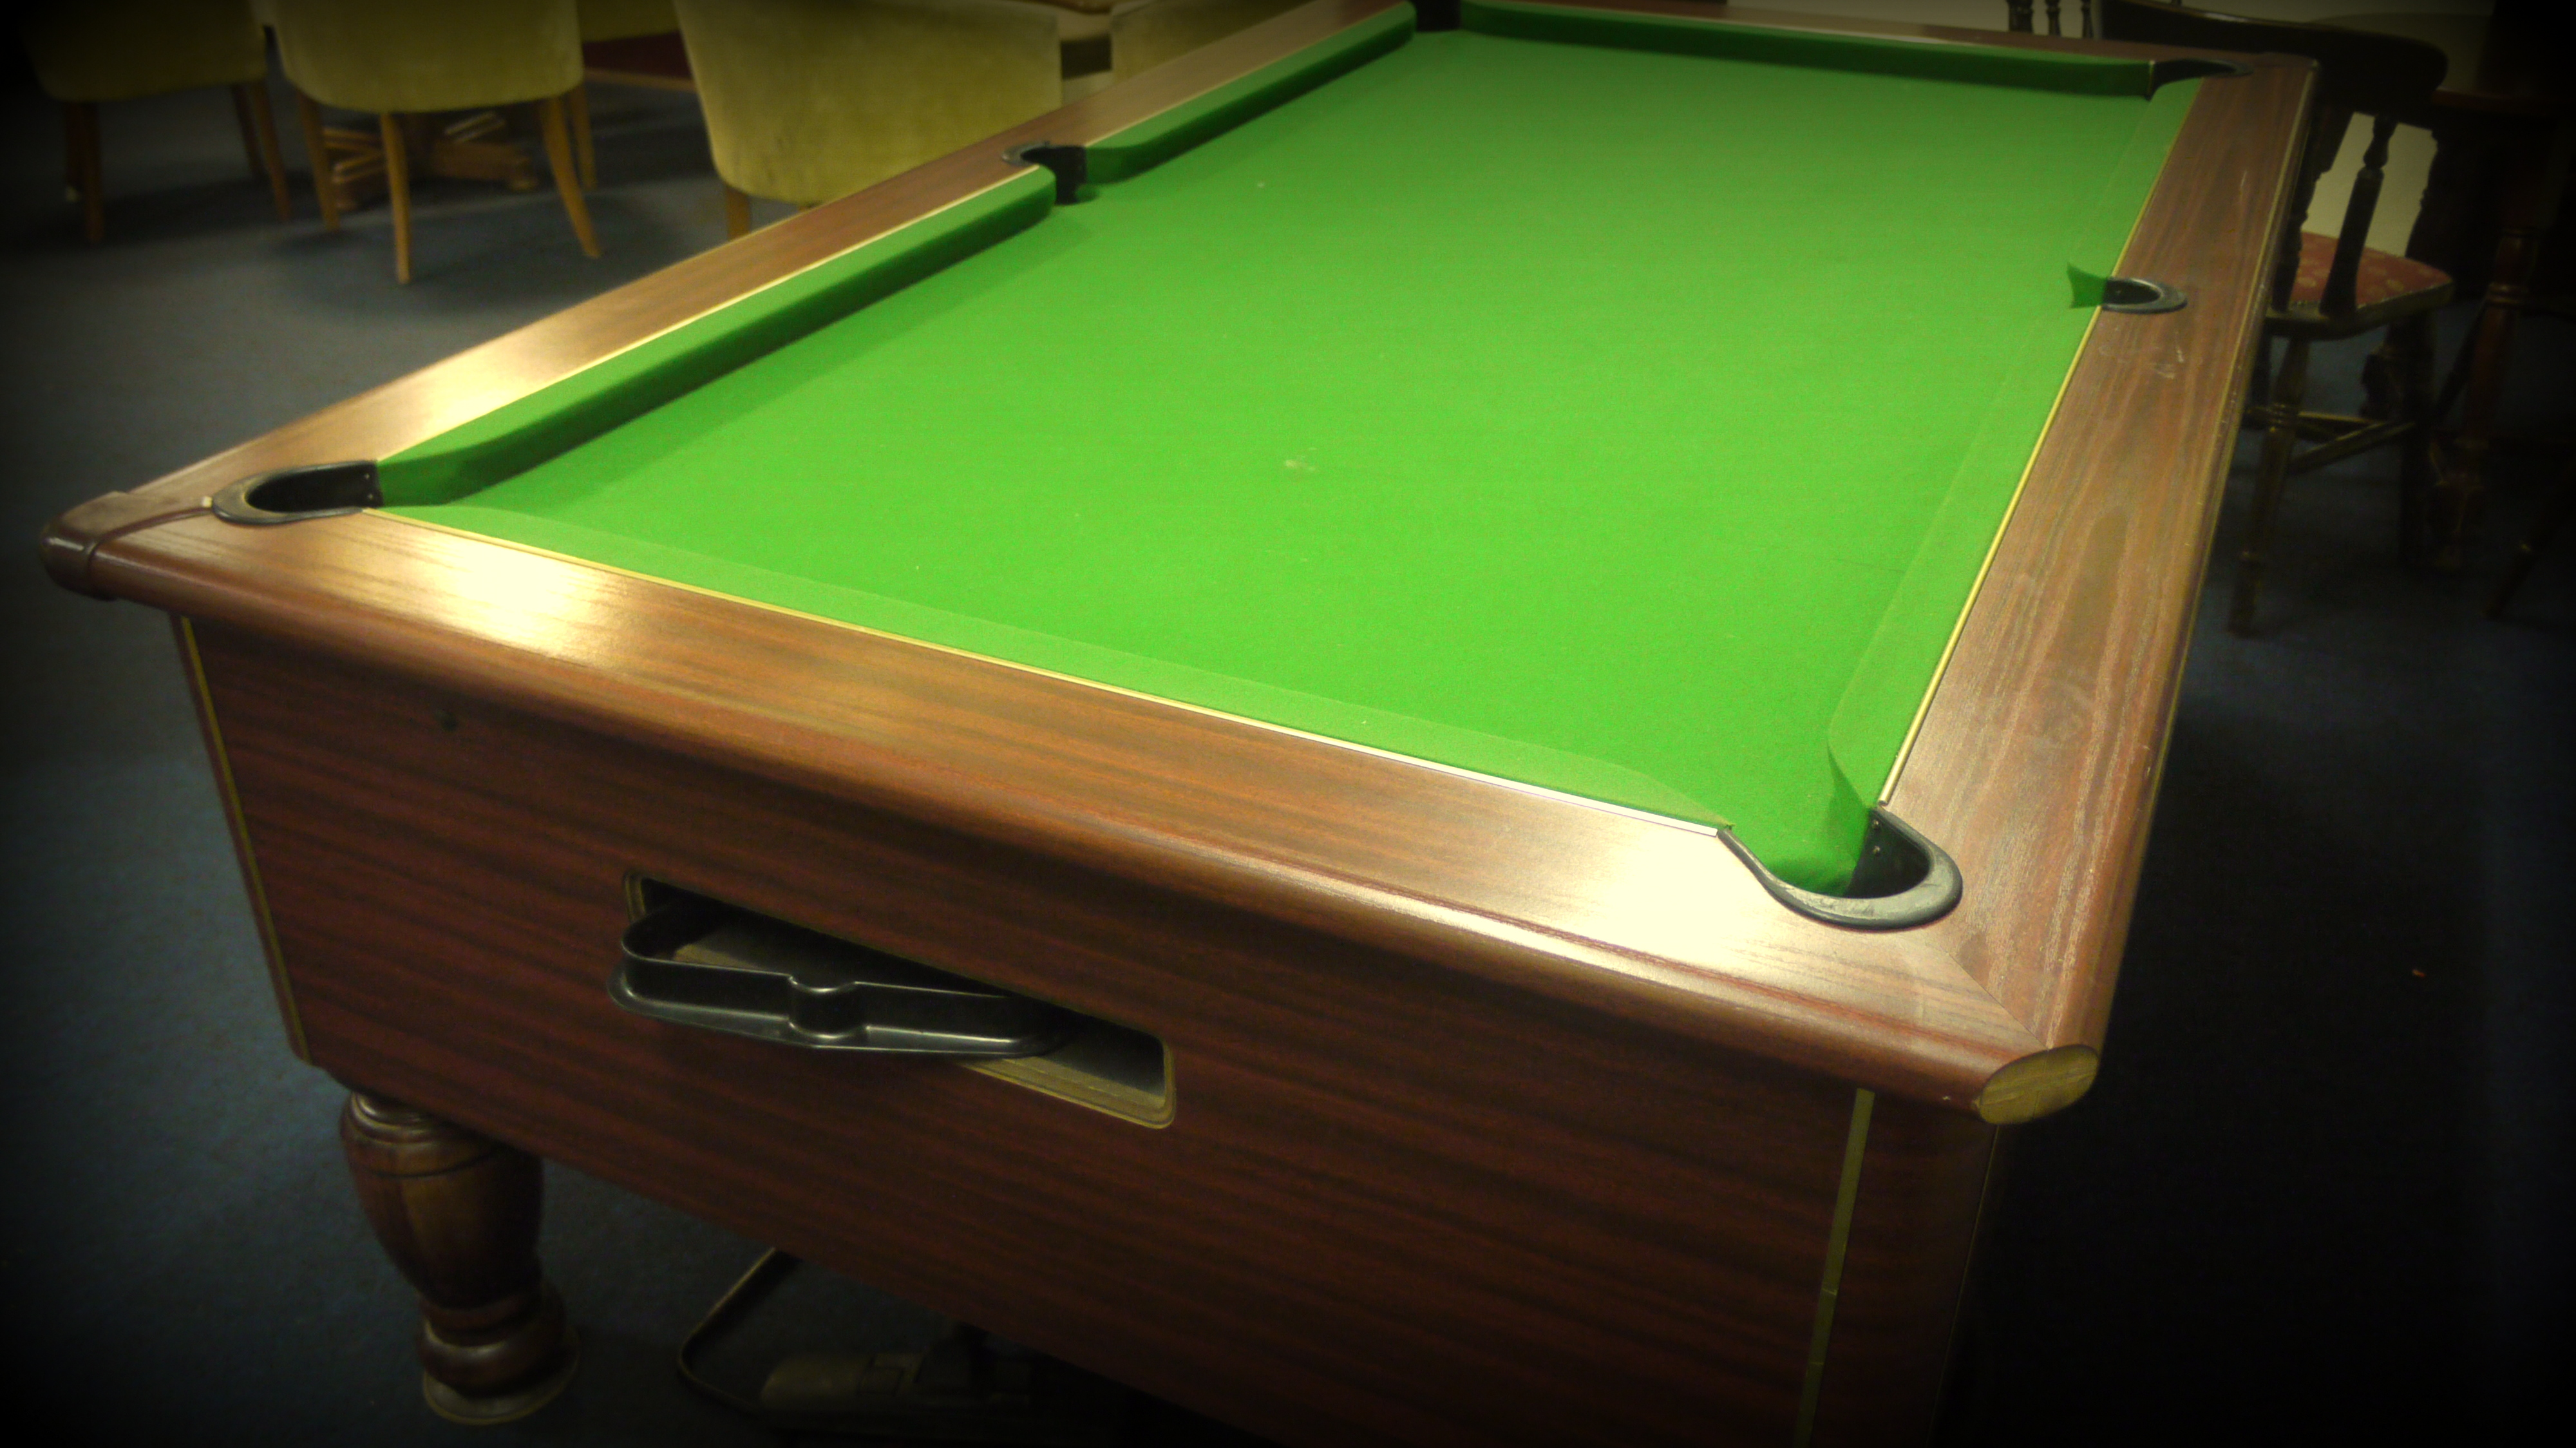 Our pool table